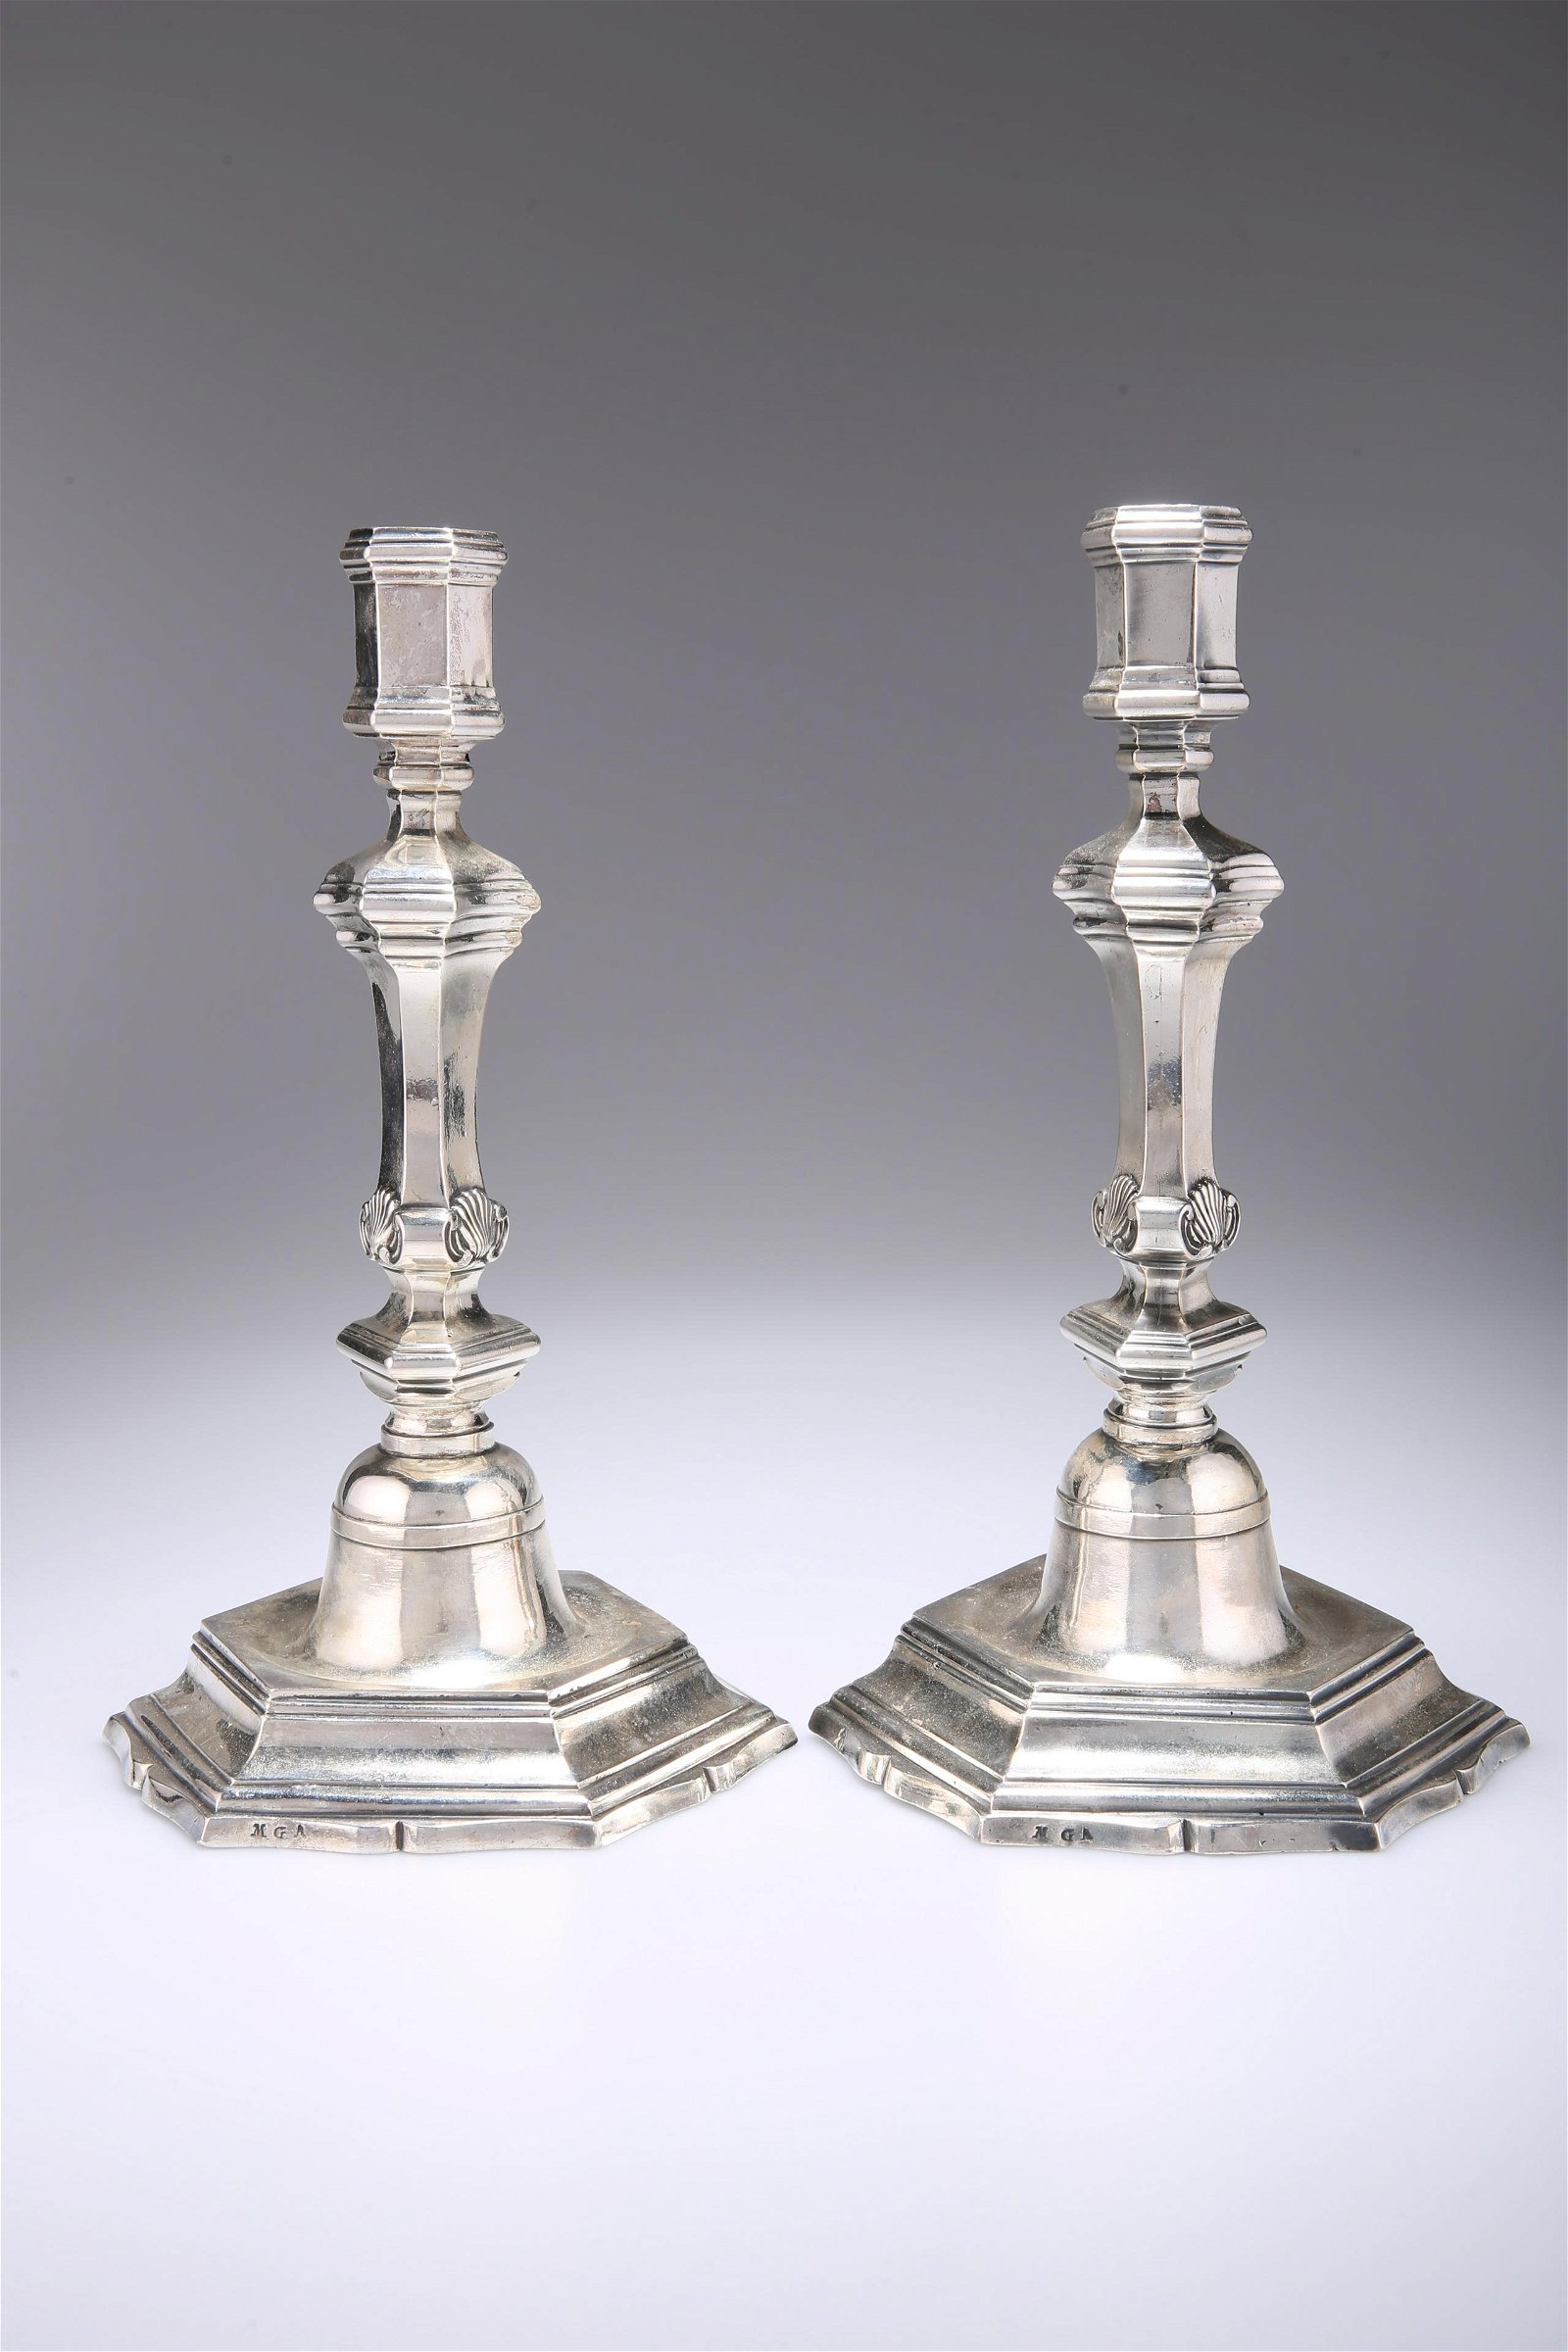 A PAIR OF 18TH CENTURY FRENCH SILVER CANDLESTICKS,